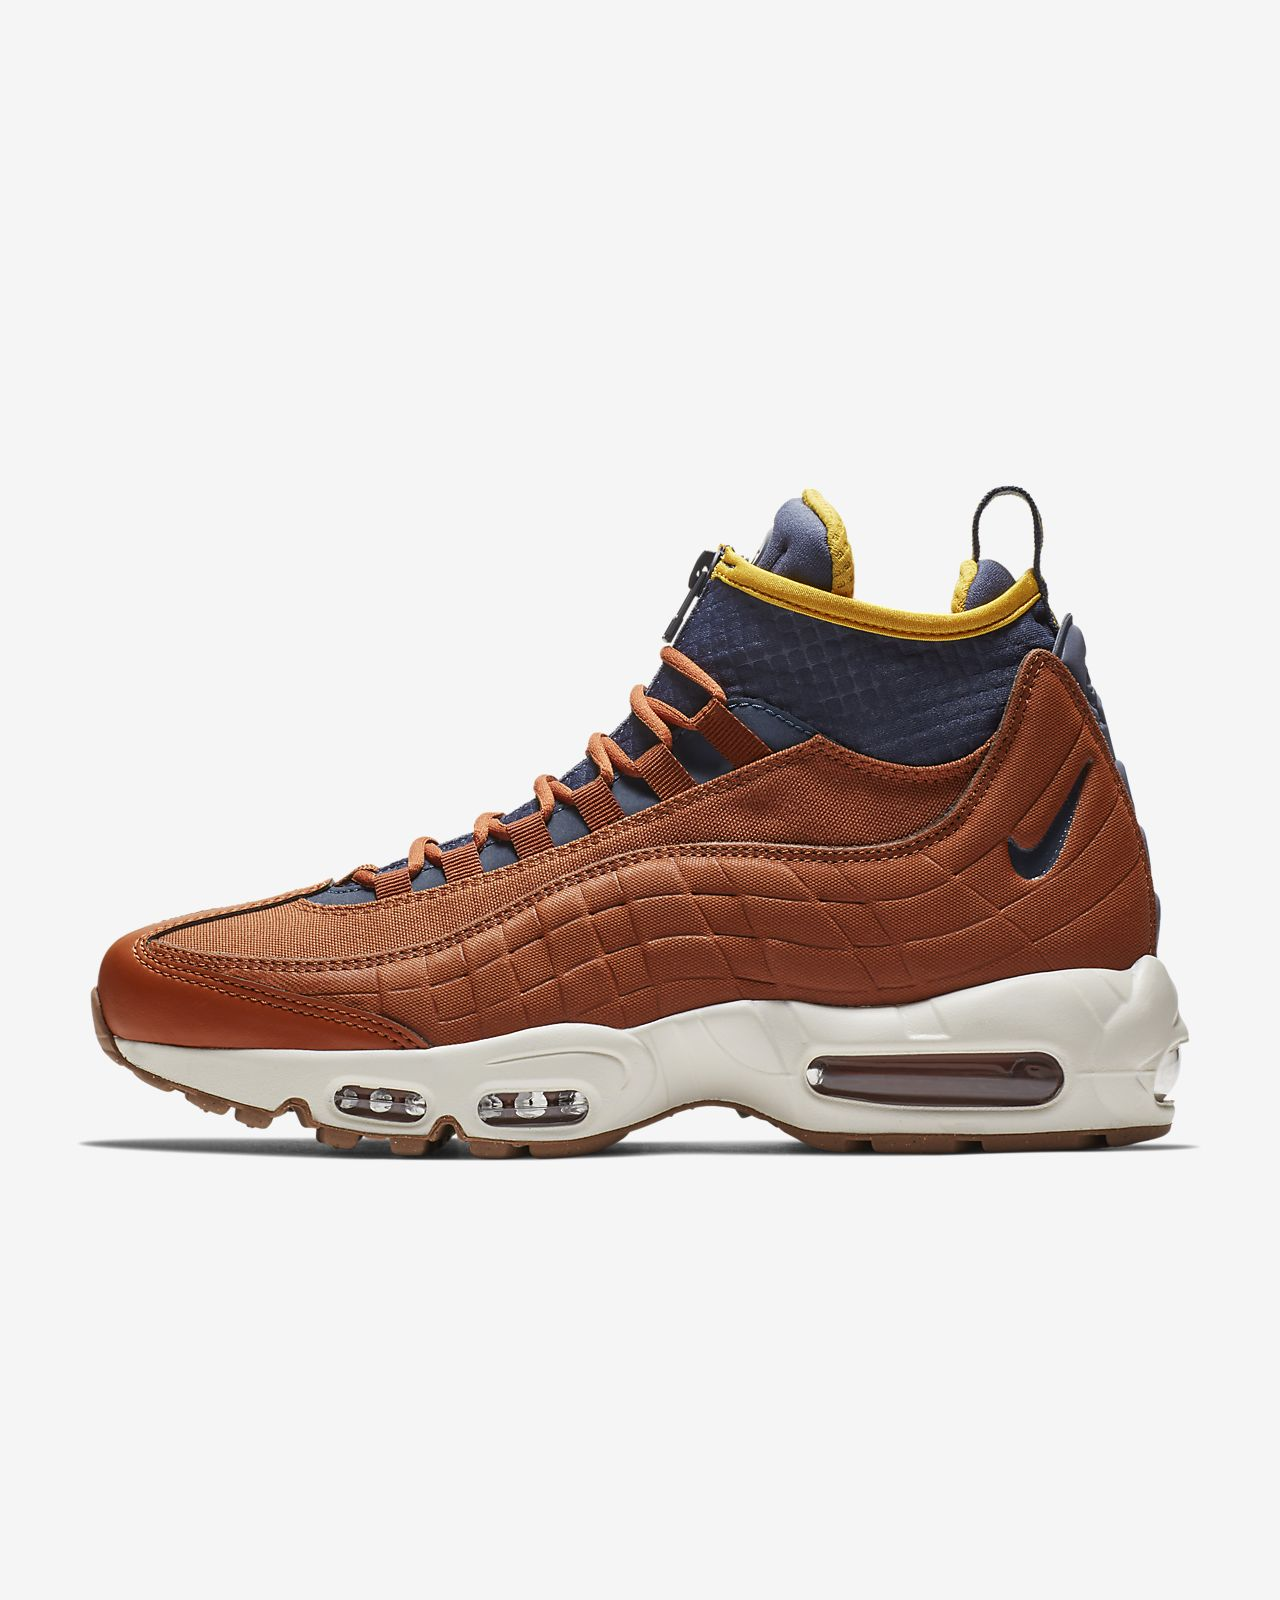 ddd71cac27 ... reduced nike air max 95 sneakerboot botas hombre f2747 822a2